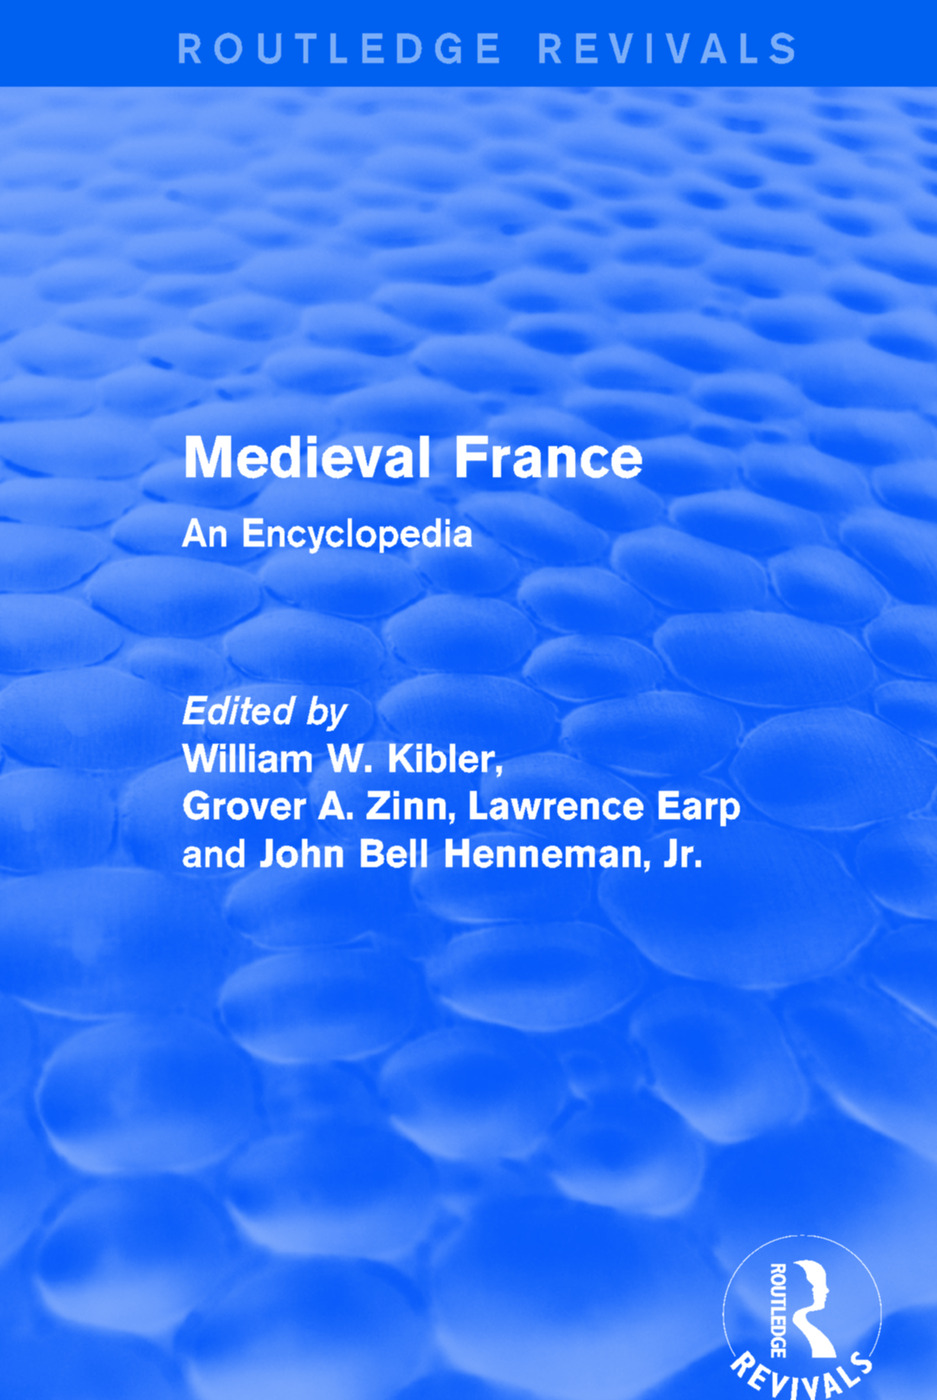 Routledge Revivals: Medieval France (1995): An Encyclopedia book cover